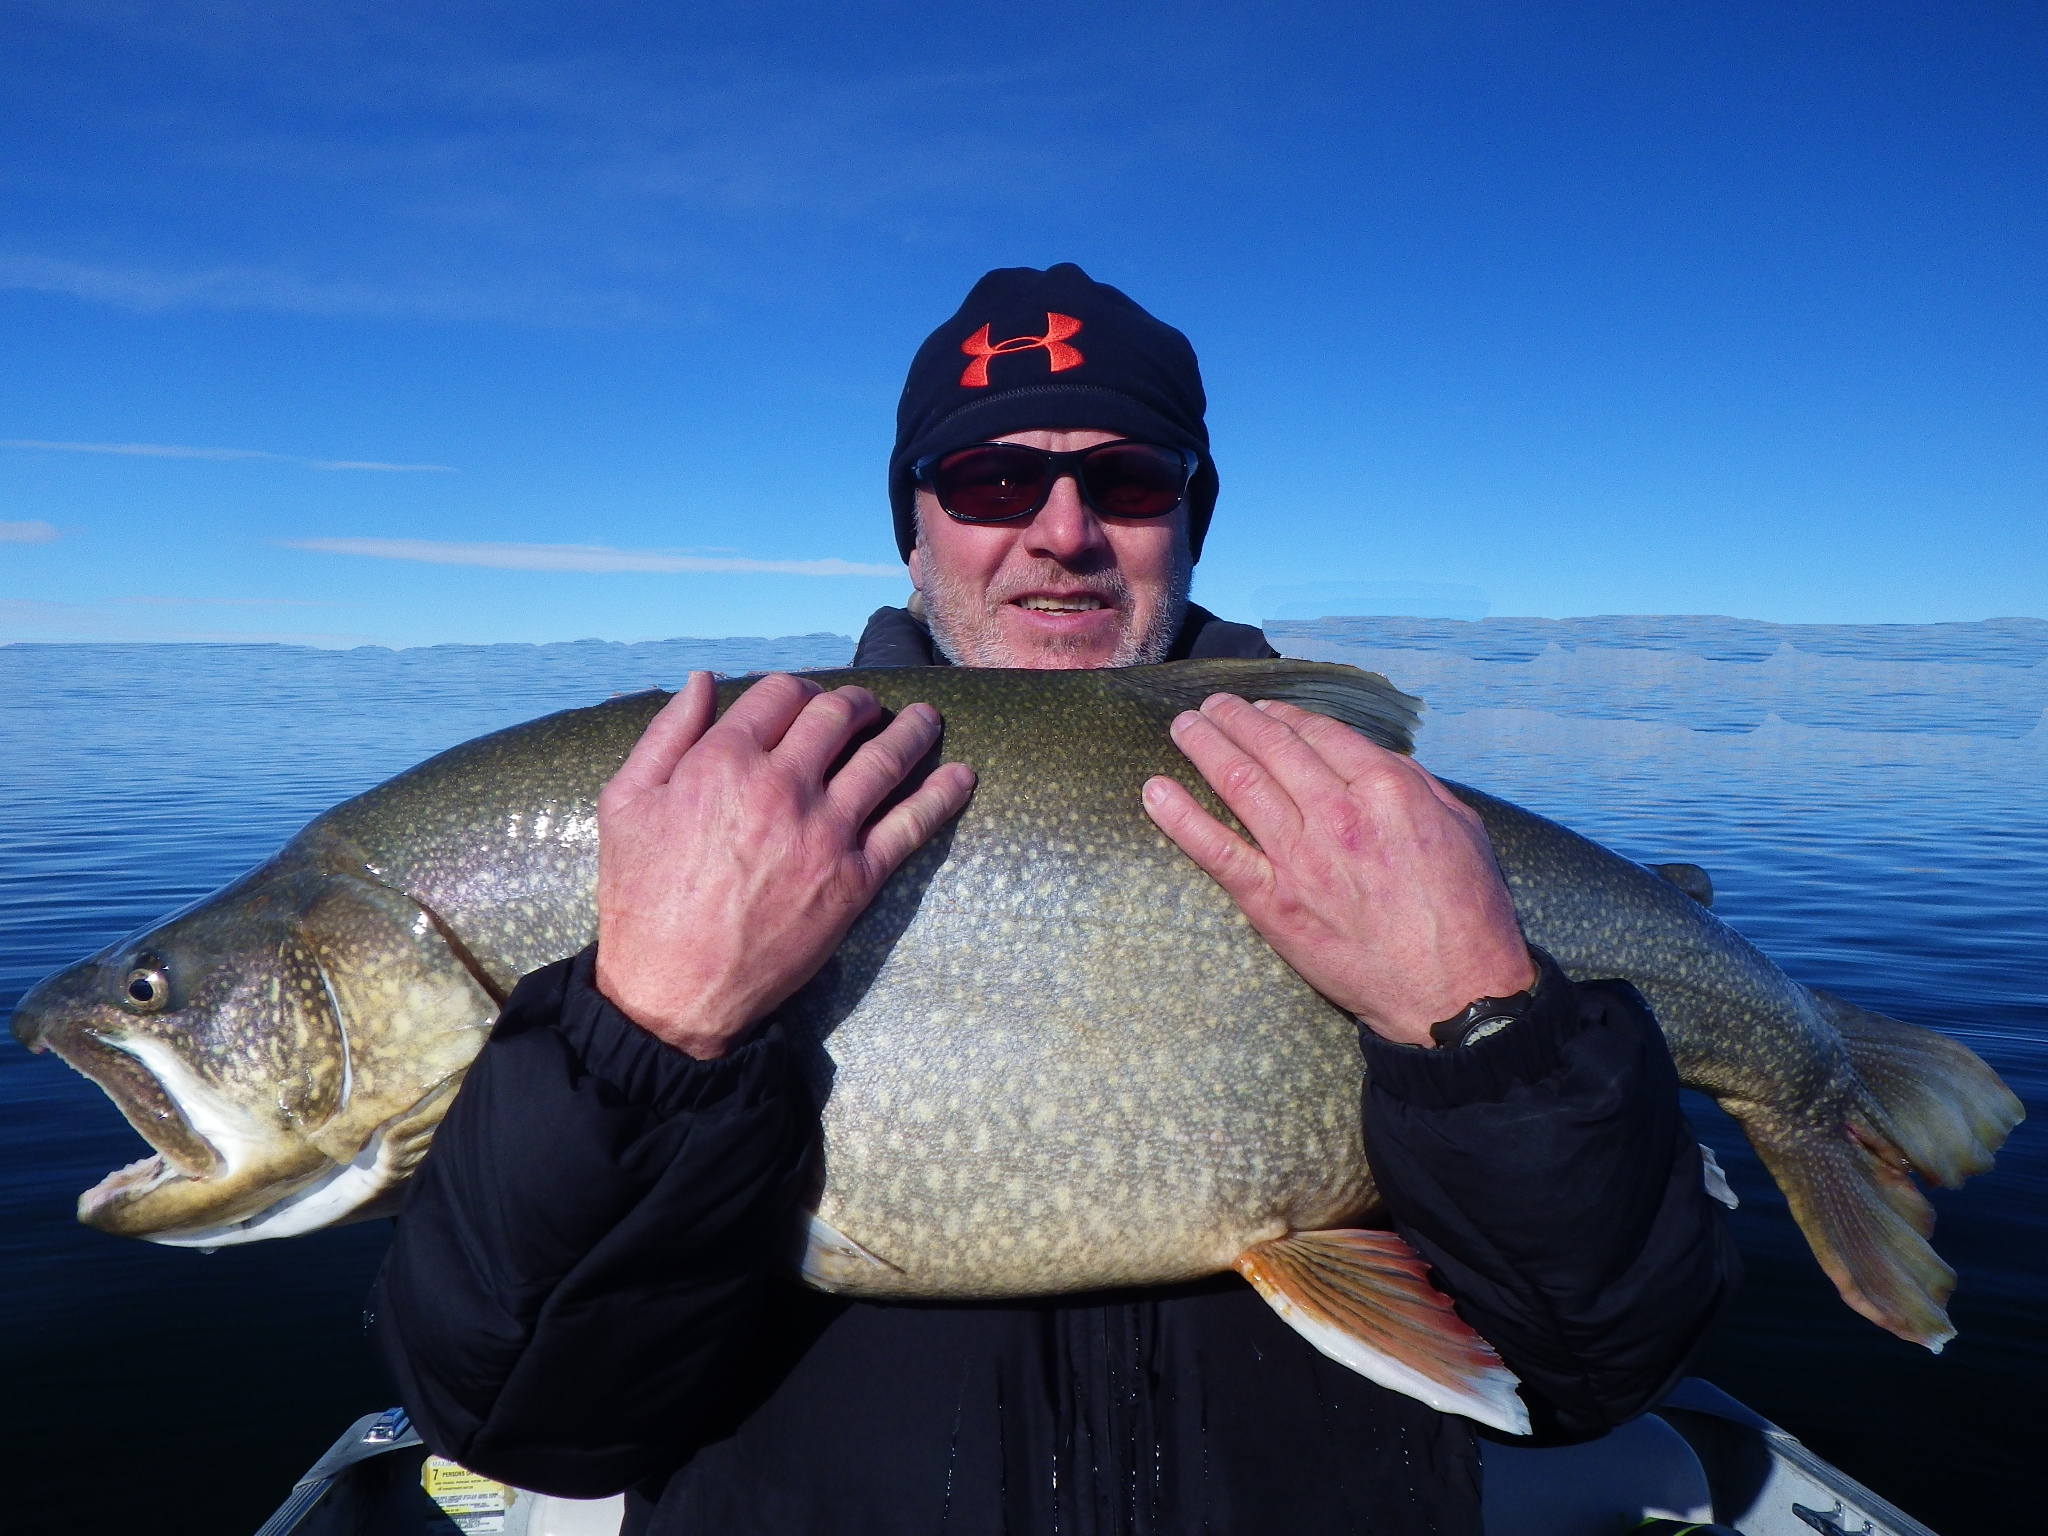 Creative fishing adventures big fish over the years for The big fish